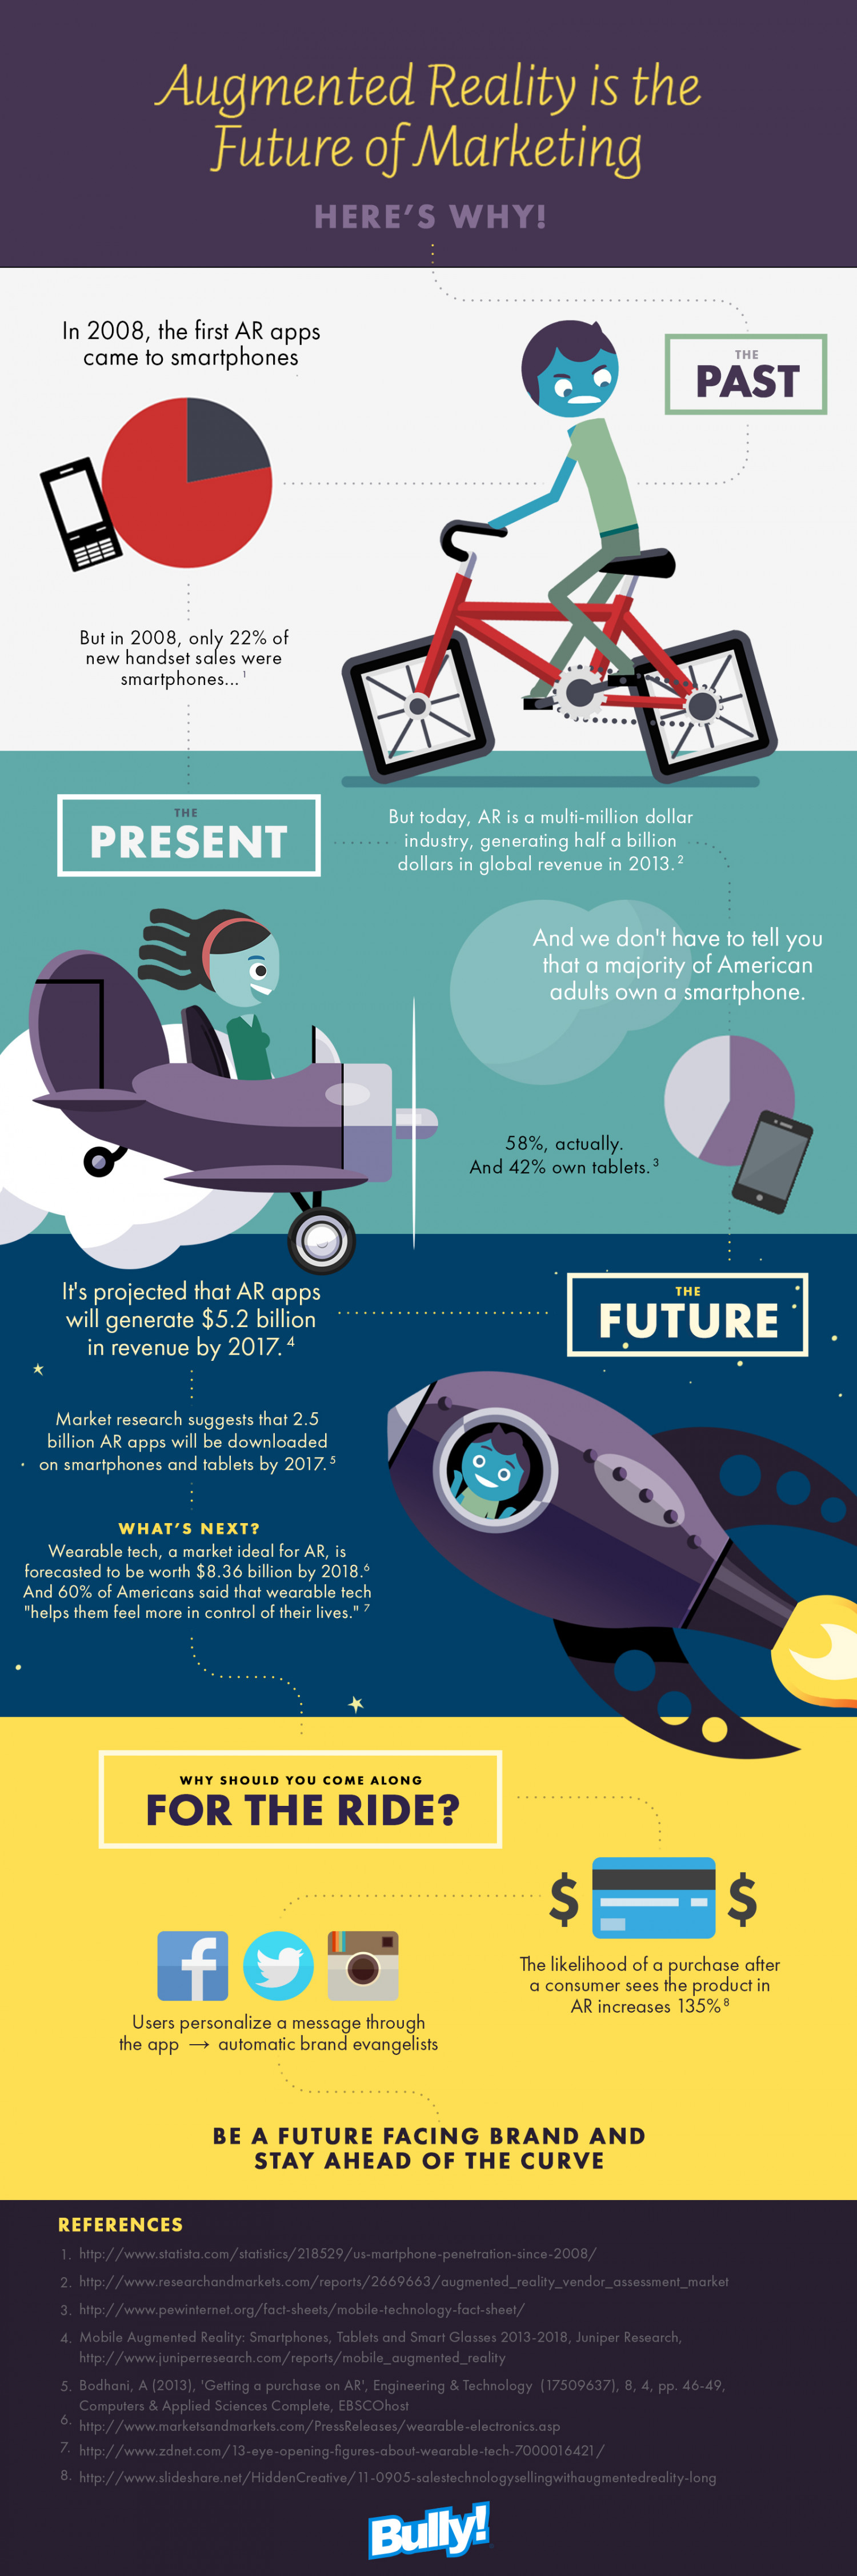 Augmented Reality is the Future of Marketing Infographic